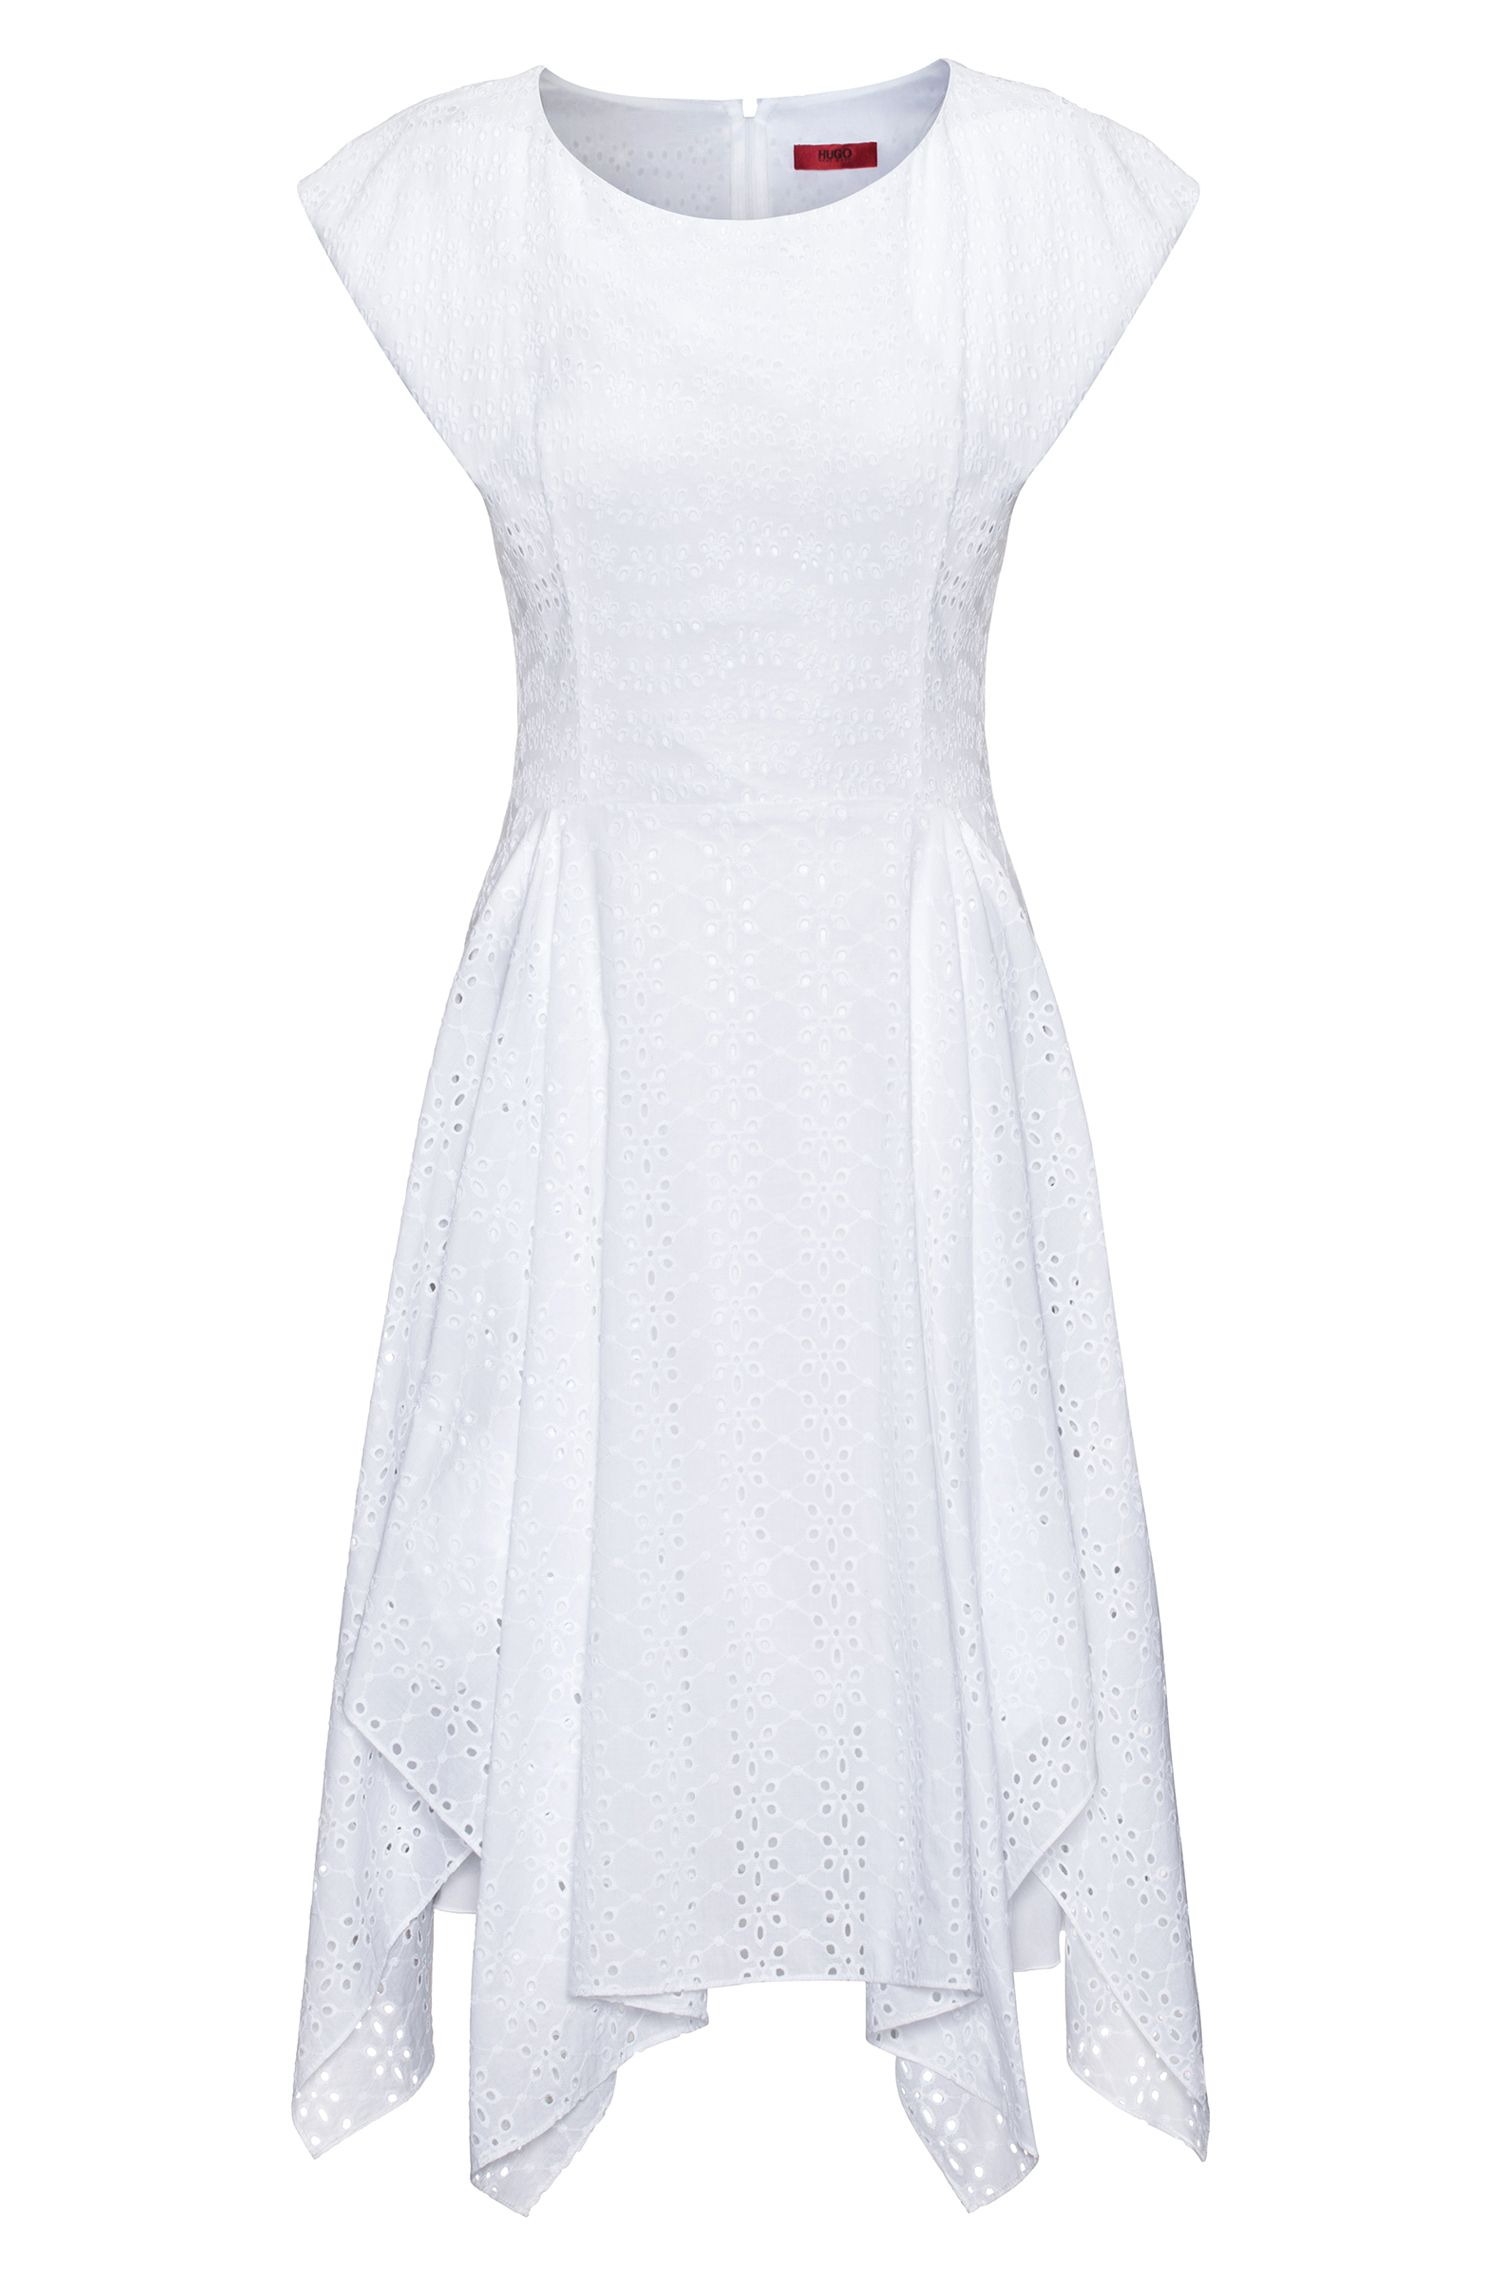 Cotton broderie anglaise dress with handkerchief hem